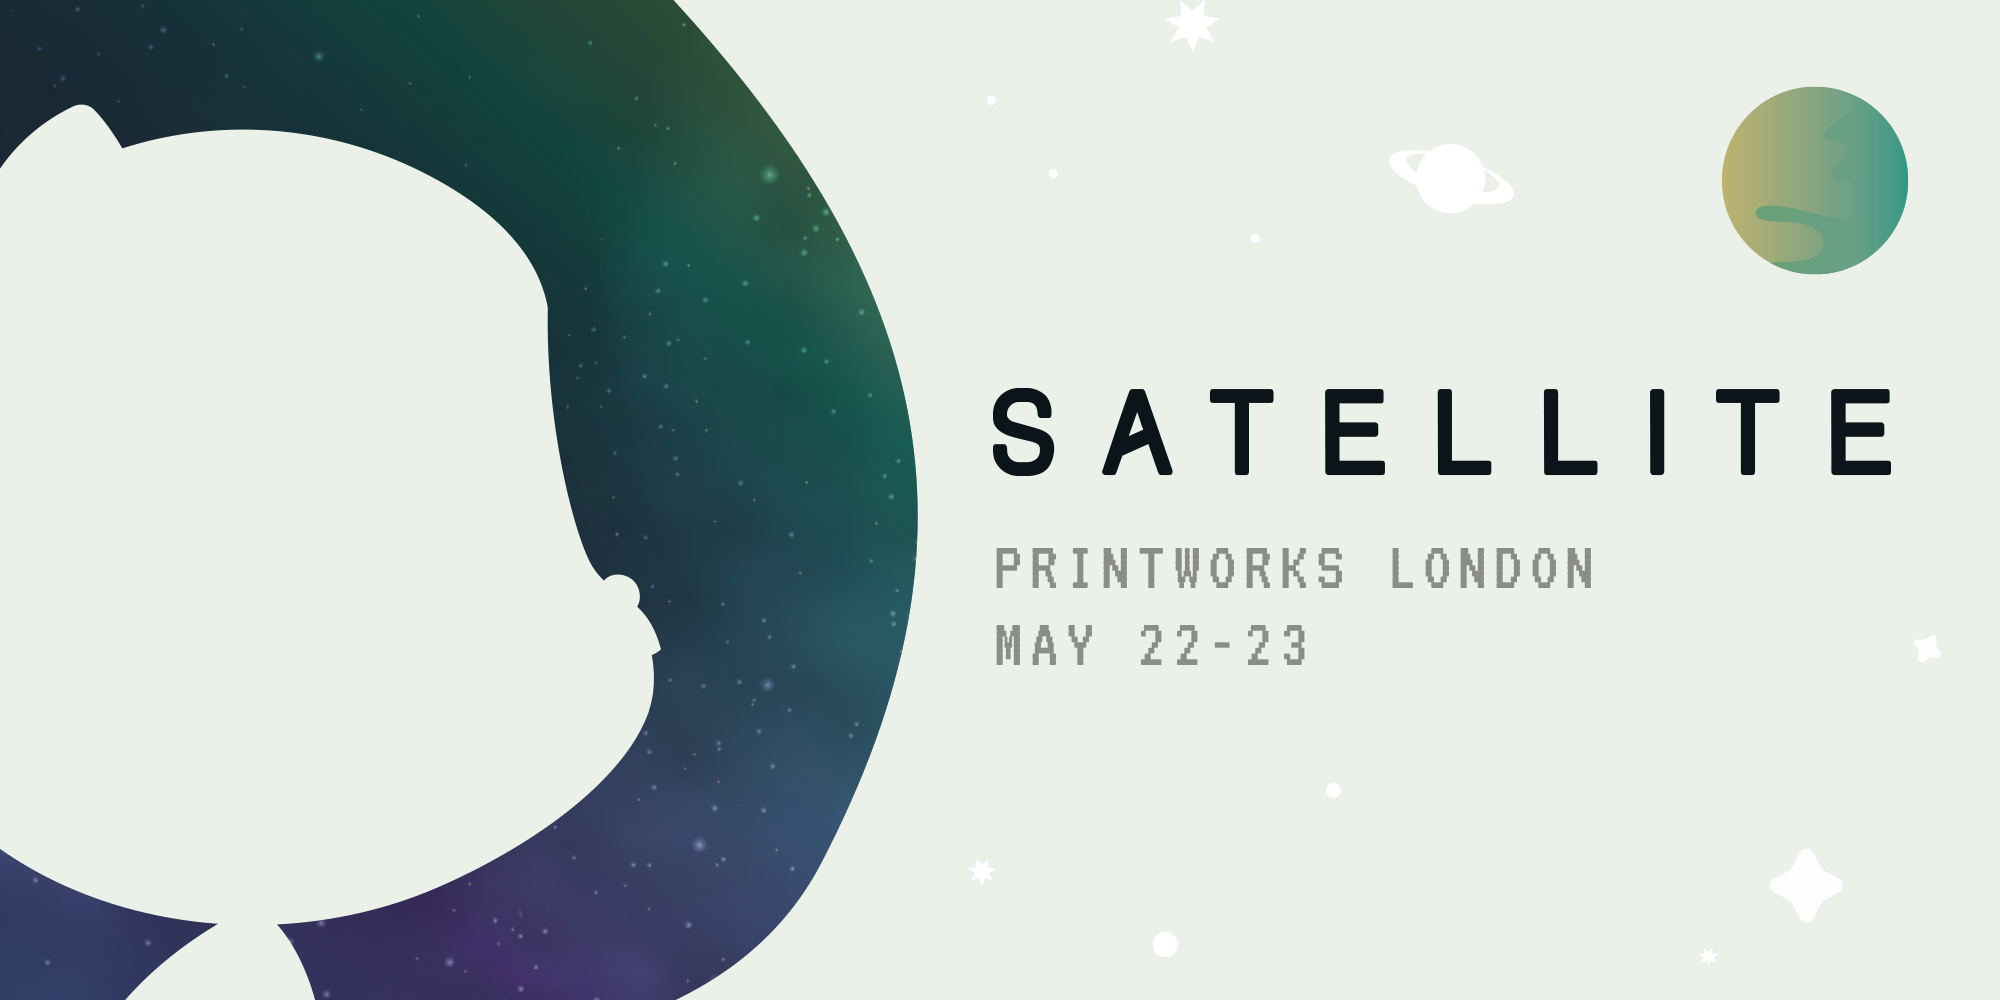 GitHub Satellite at Printworks London May 22-23